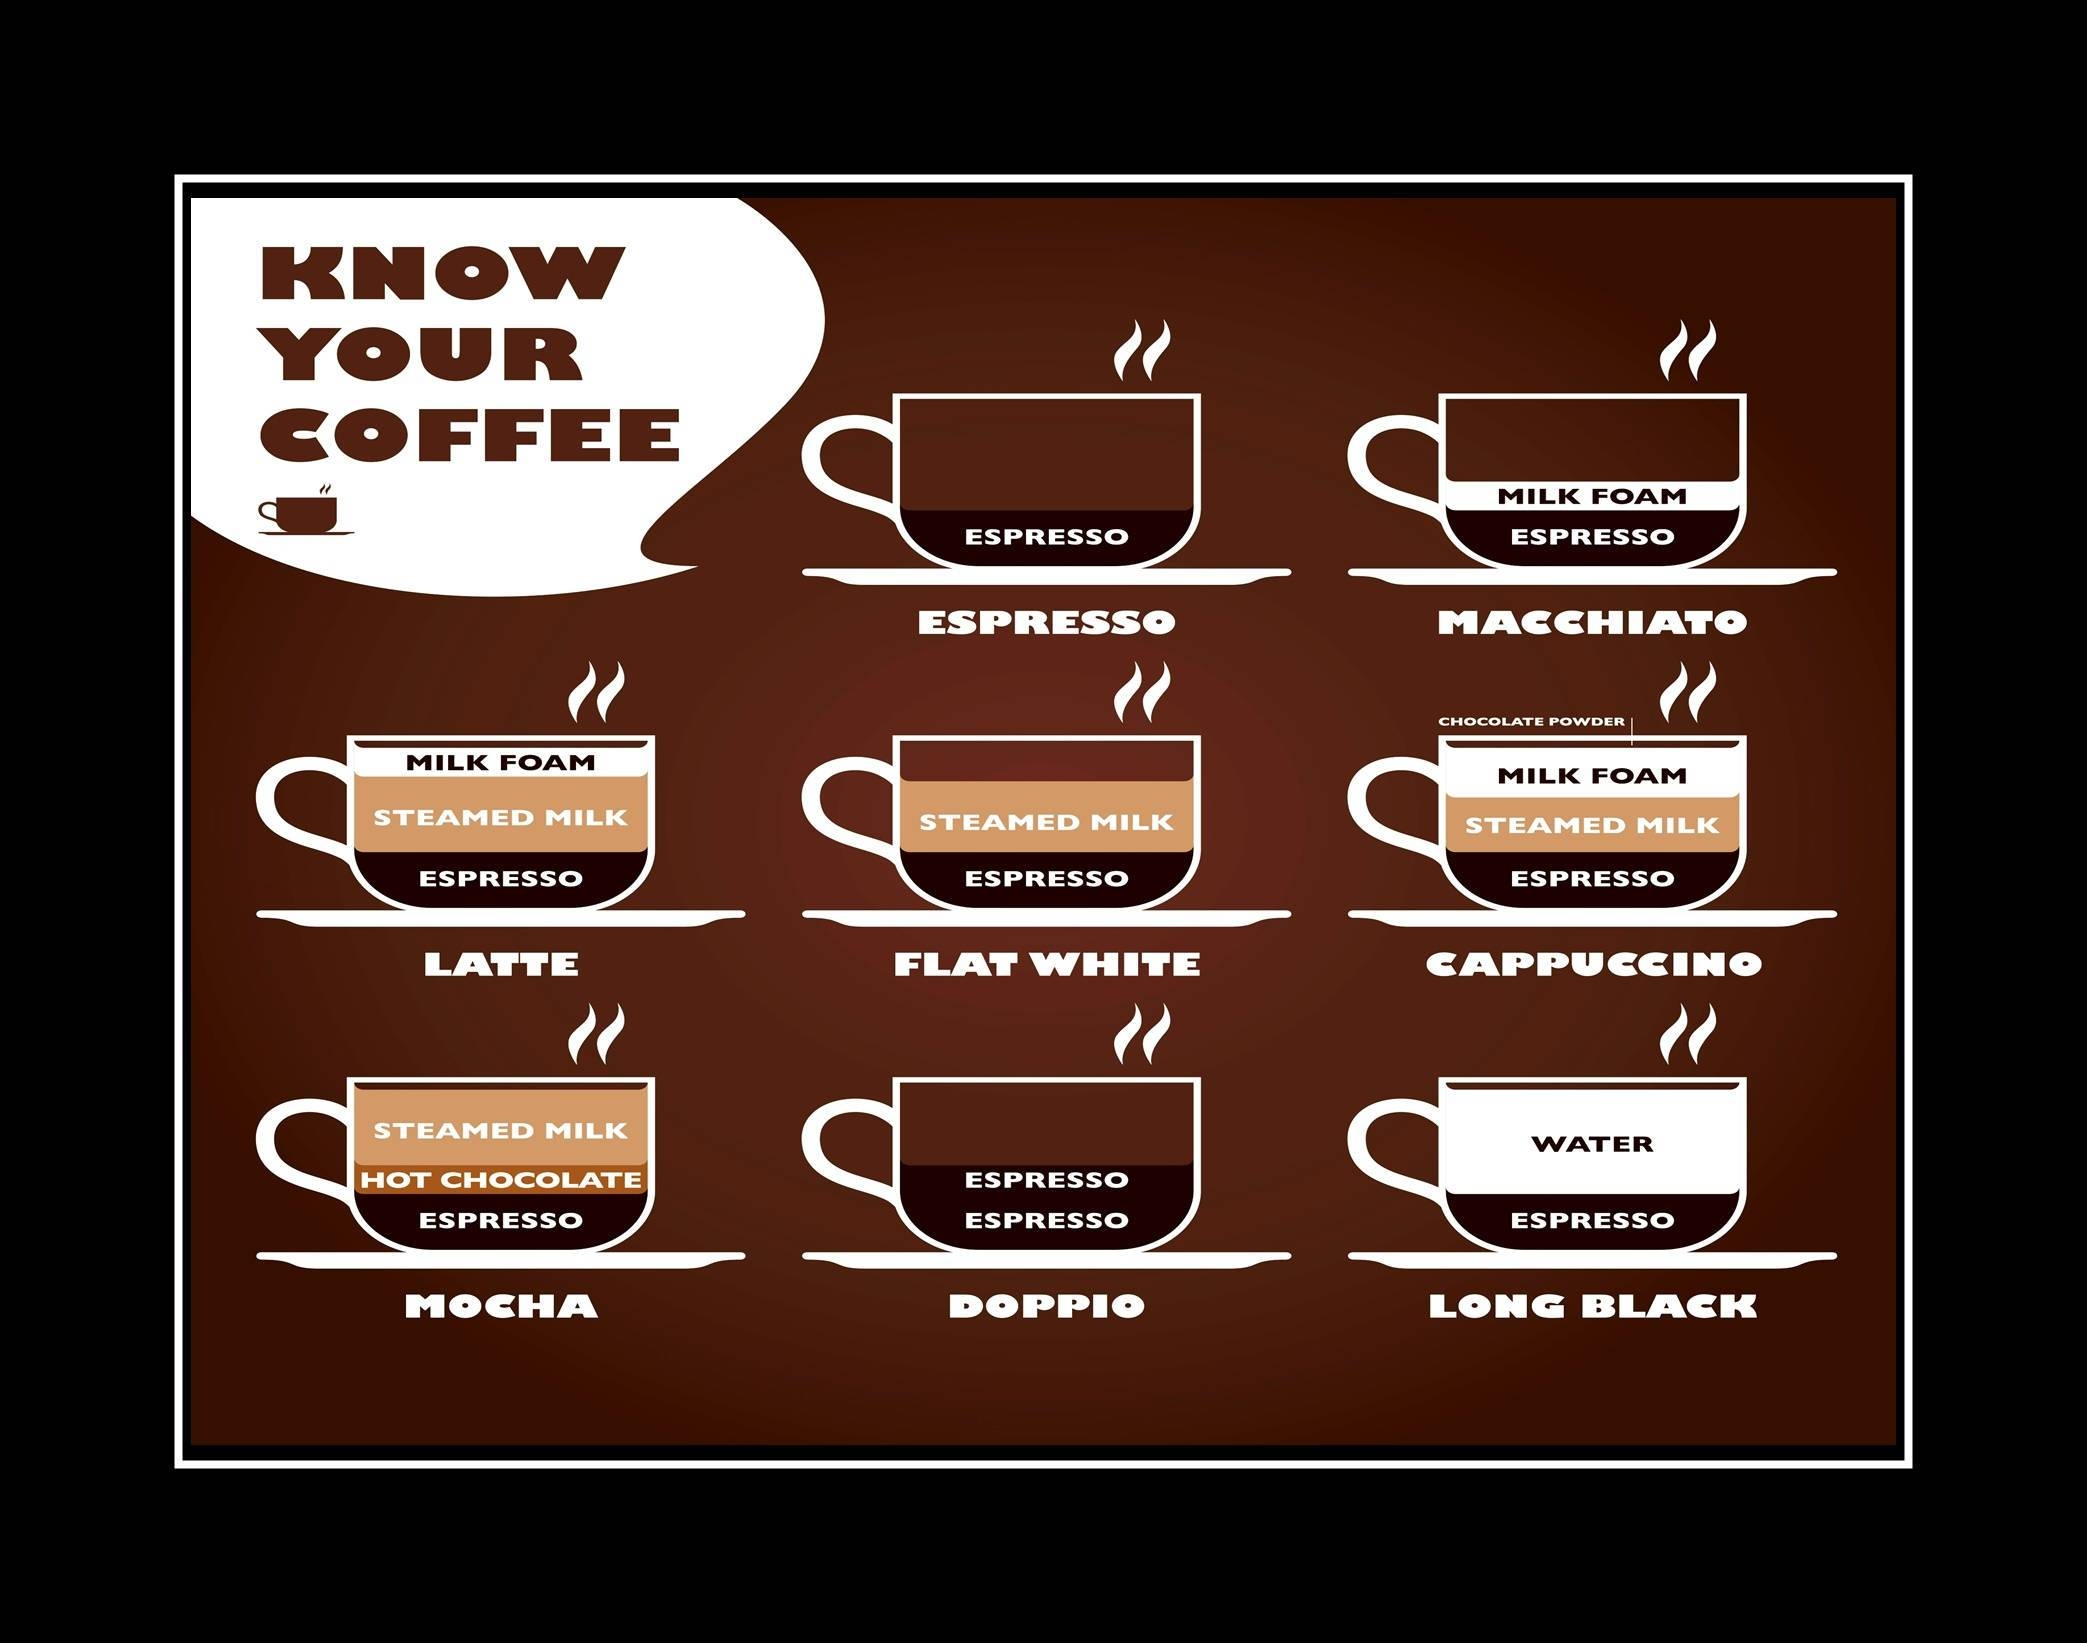 Know Your Coffee Poster, Kitchen Wall Decor, Cafe Wall Art Gift Throughout Best And Newest Cafe Latte Kitchen Wall Art (View 24 of 30)